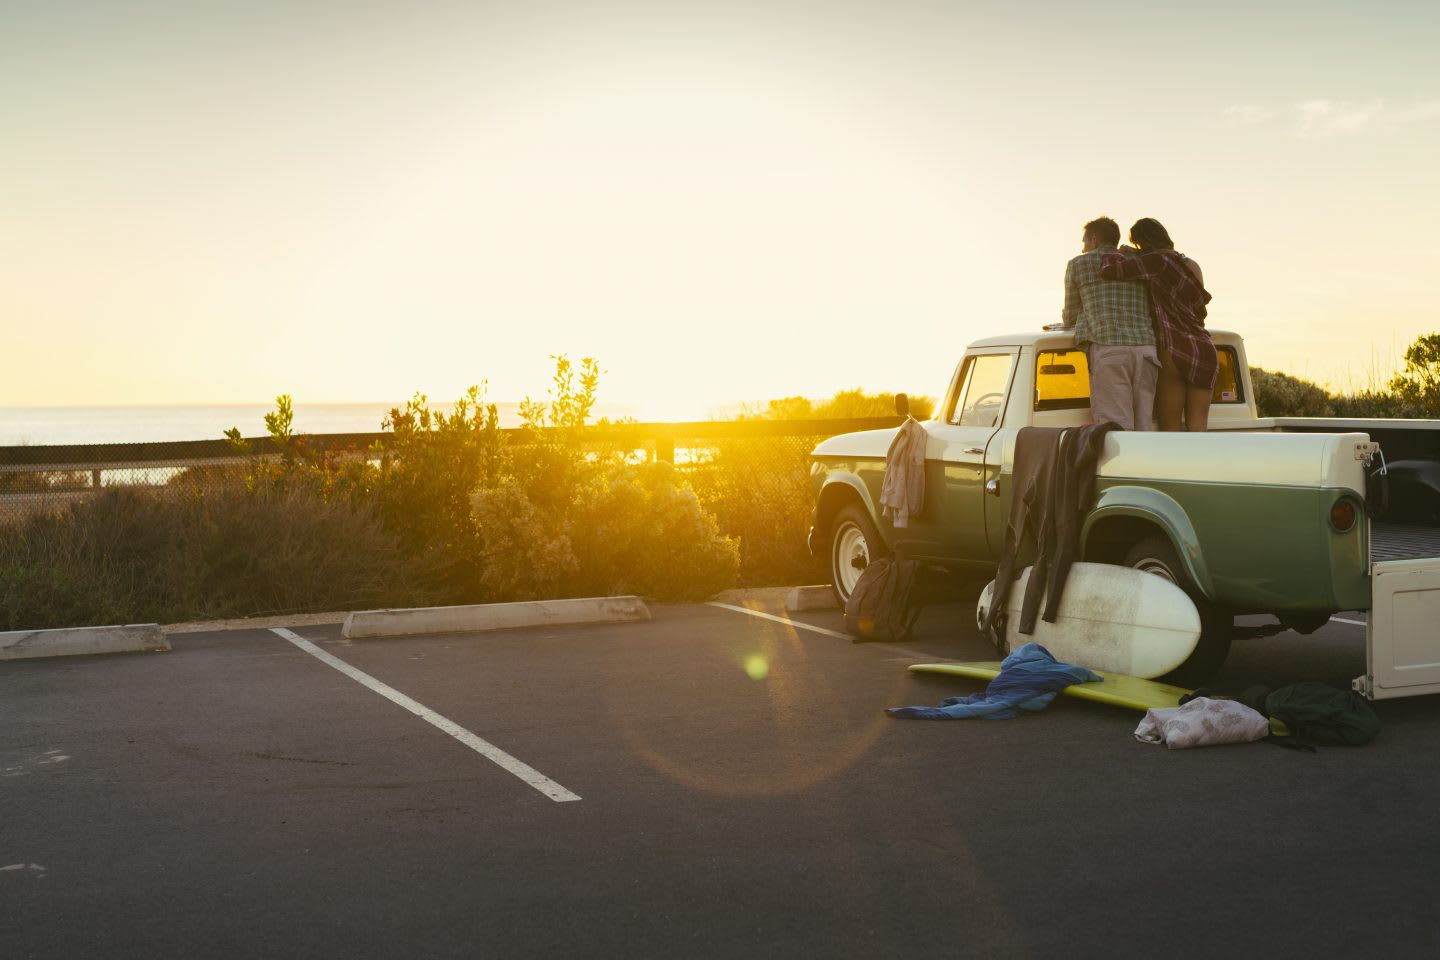 A van in the sunset with a couple on the deck relaxing on top of it_beach_chilling moments_happy days